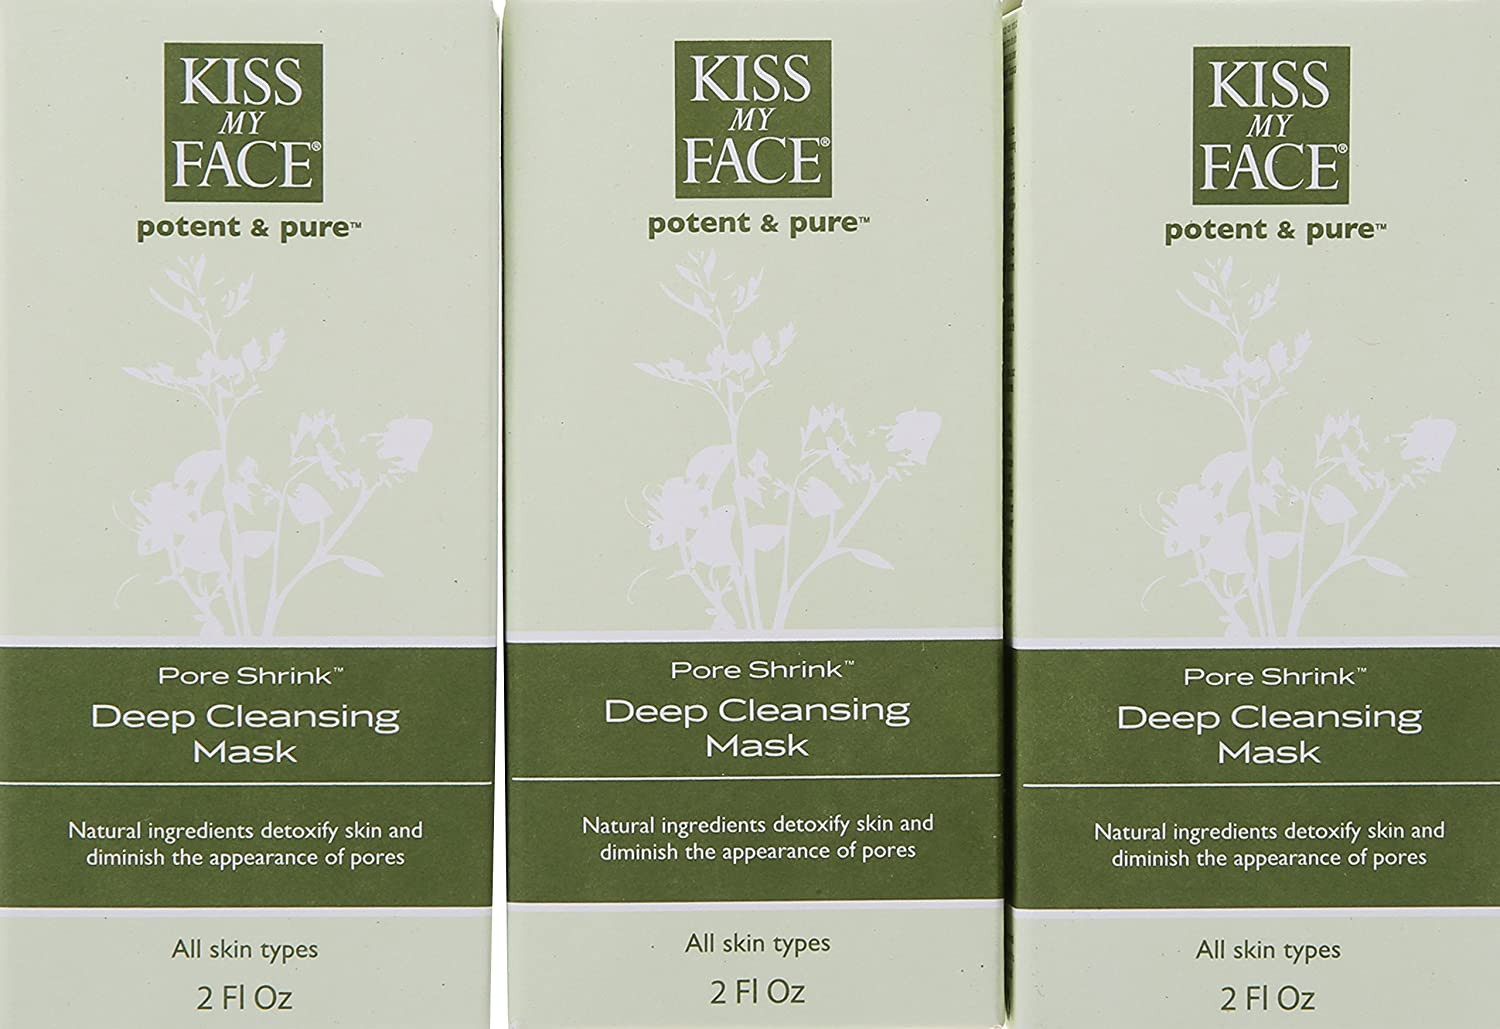 Pore Shrink Deep Cleansing Mask by Kiss My Face #21